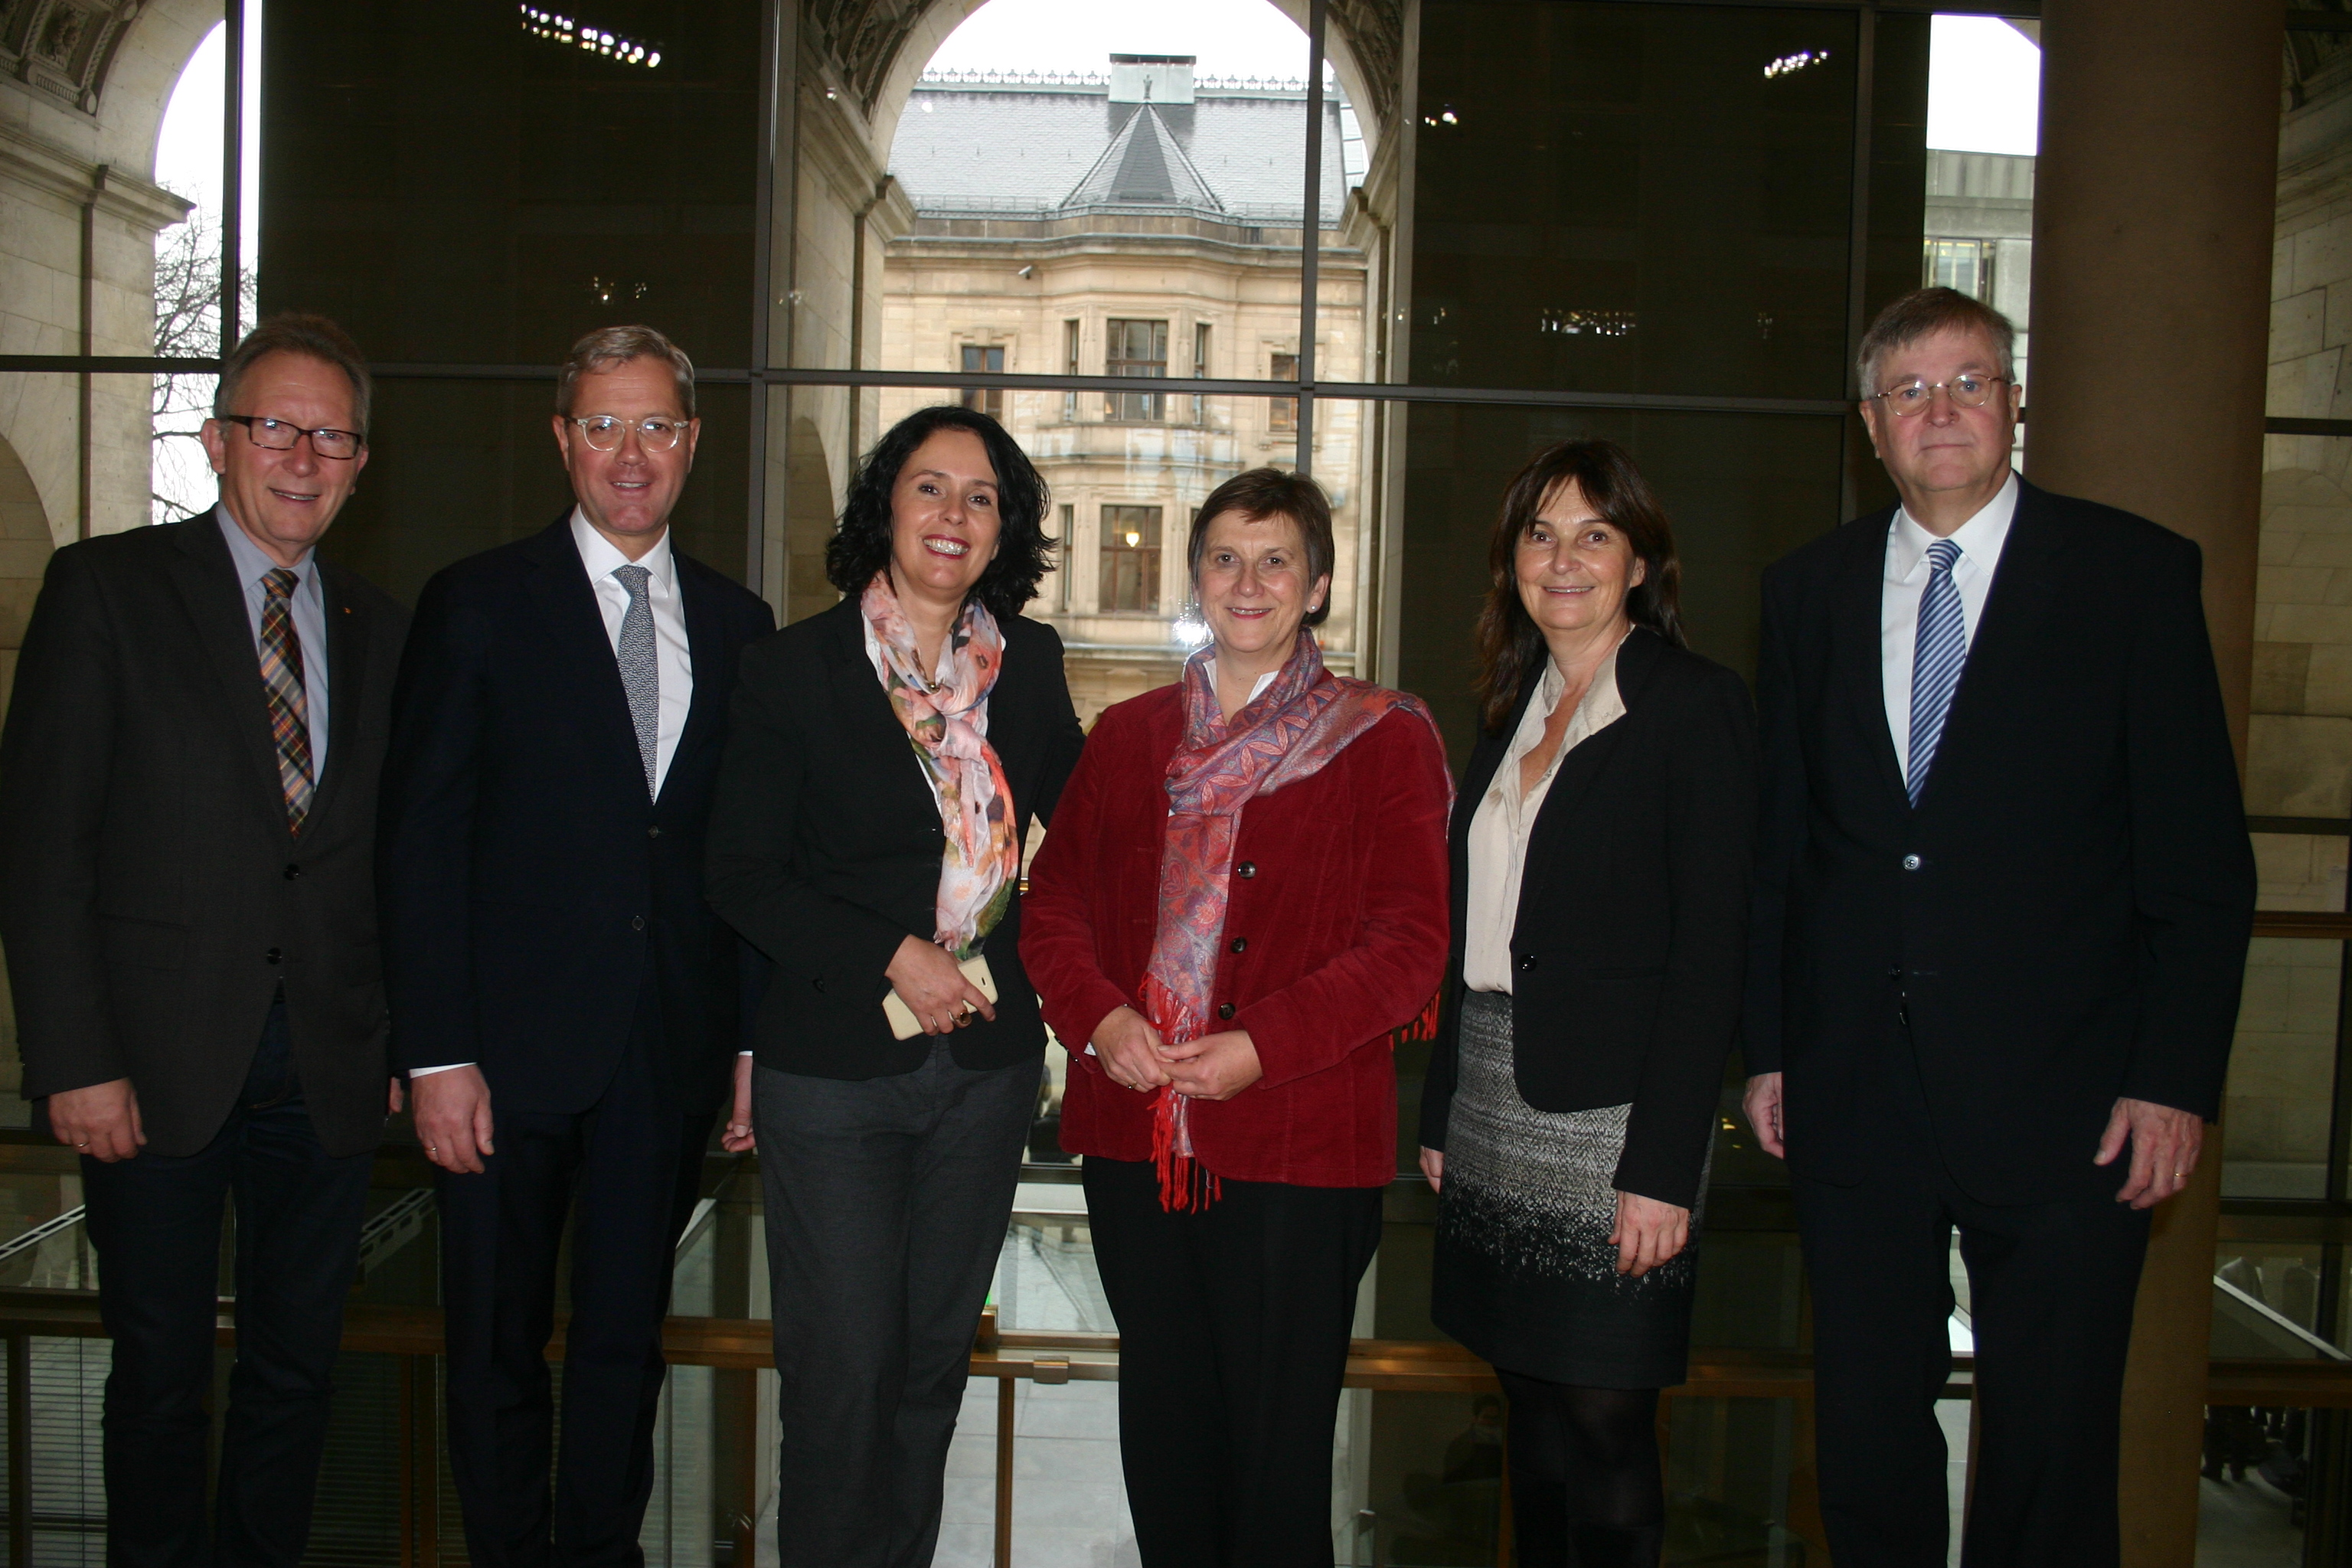 v.l.: Erwin Rüddel MdB, Dr. Norbert Röttgen MdB, Elisabeth Winkelmeier-Becker MdB, Dr. Claudia Lücking-Michel MdB, Mechthild Heil MdB, Peter Hintze MdB; © Büro Lücking-Michel